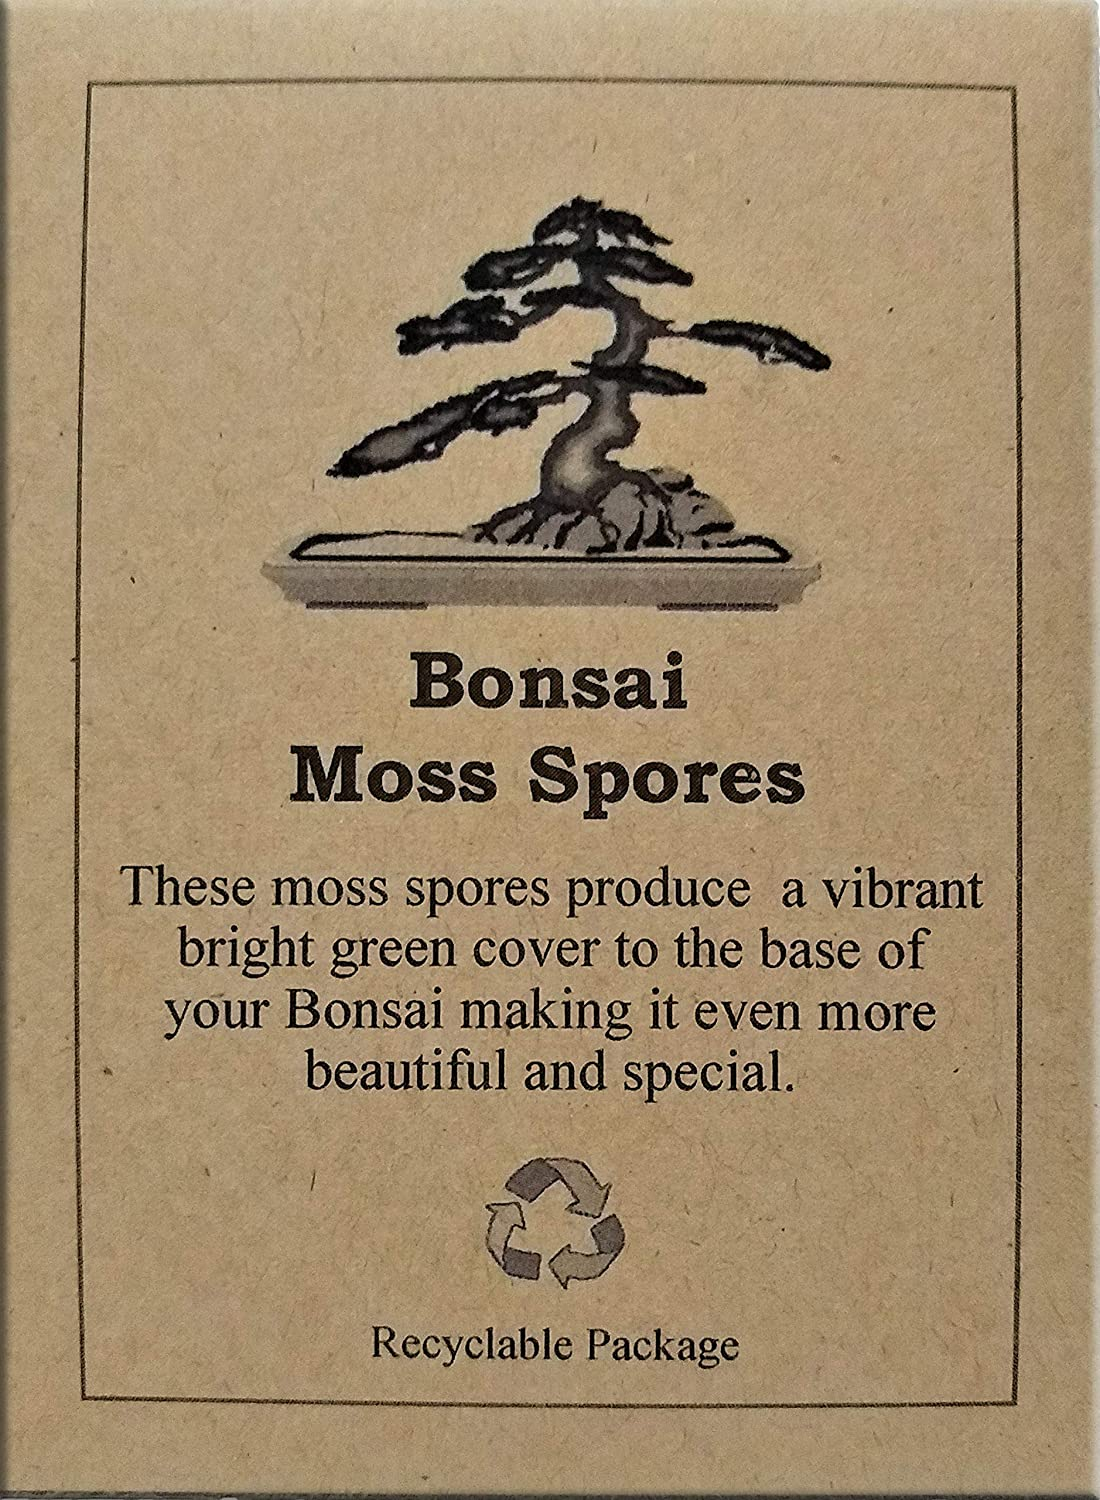 Grow Bonsai Moss Spores, perfect addition to your bonsai tree, no tools required to plant maintain or grow, can be used in reptile enclosure DistantLife